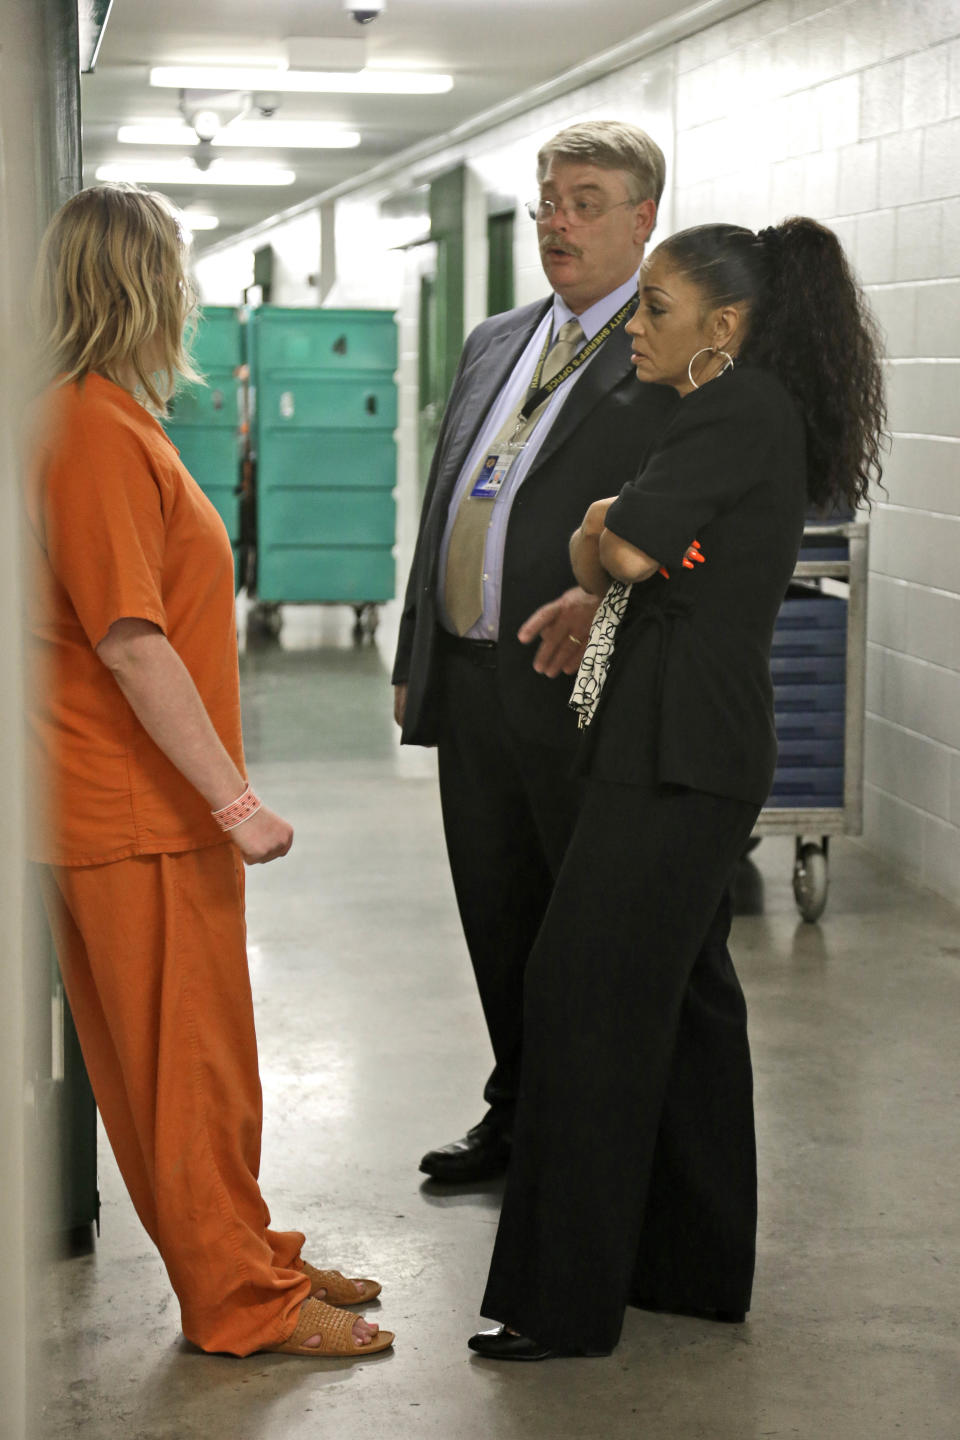 Kathryn Griffin Grinan, right, and Wayne Heintze, center,director of reentry services for the Harris County Sheriff's Office, talk with an inmate outside her cell Tuesday, June 4, 2013, in Houston. The inmate was arrested soon after being paroled and leaving Griffith's prostitution rehabilitation program. (AP Photo/Pat Sullivan)